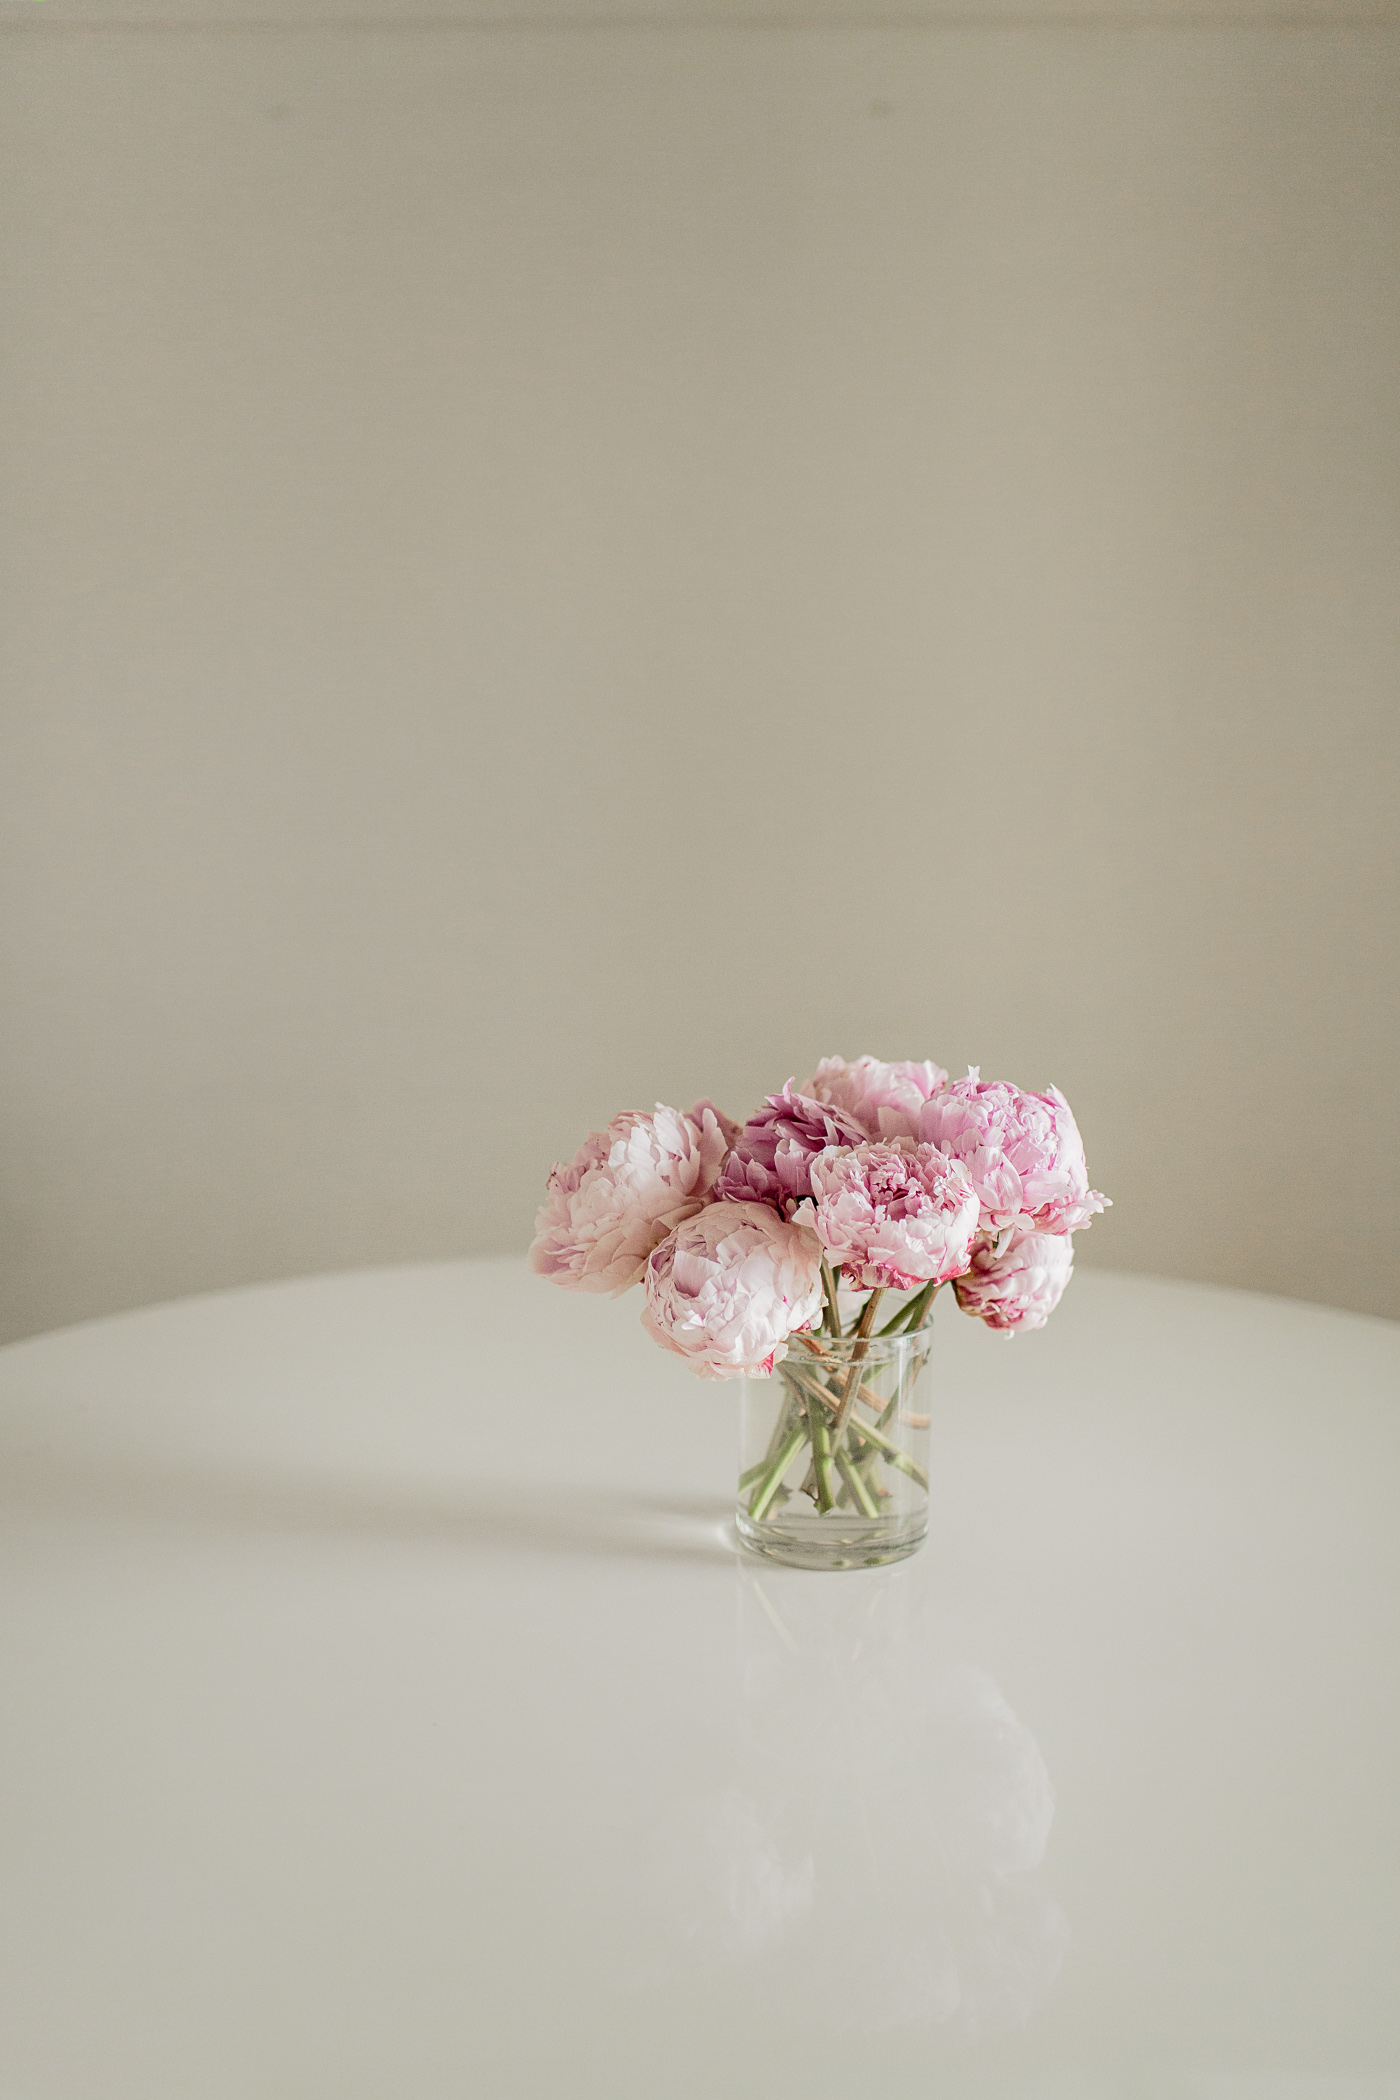 pink peonies hej doll a california travel life and style blog by